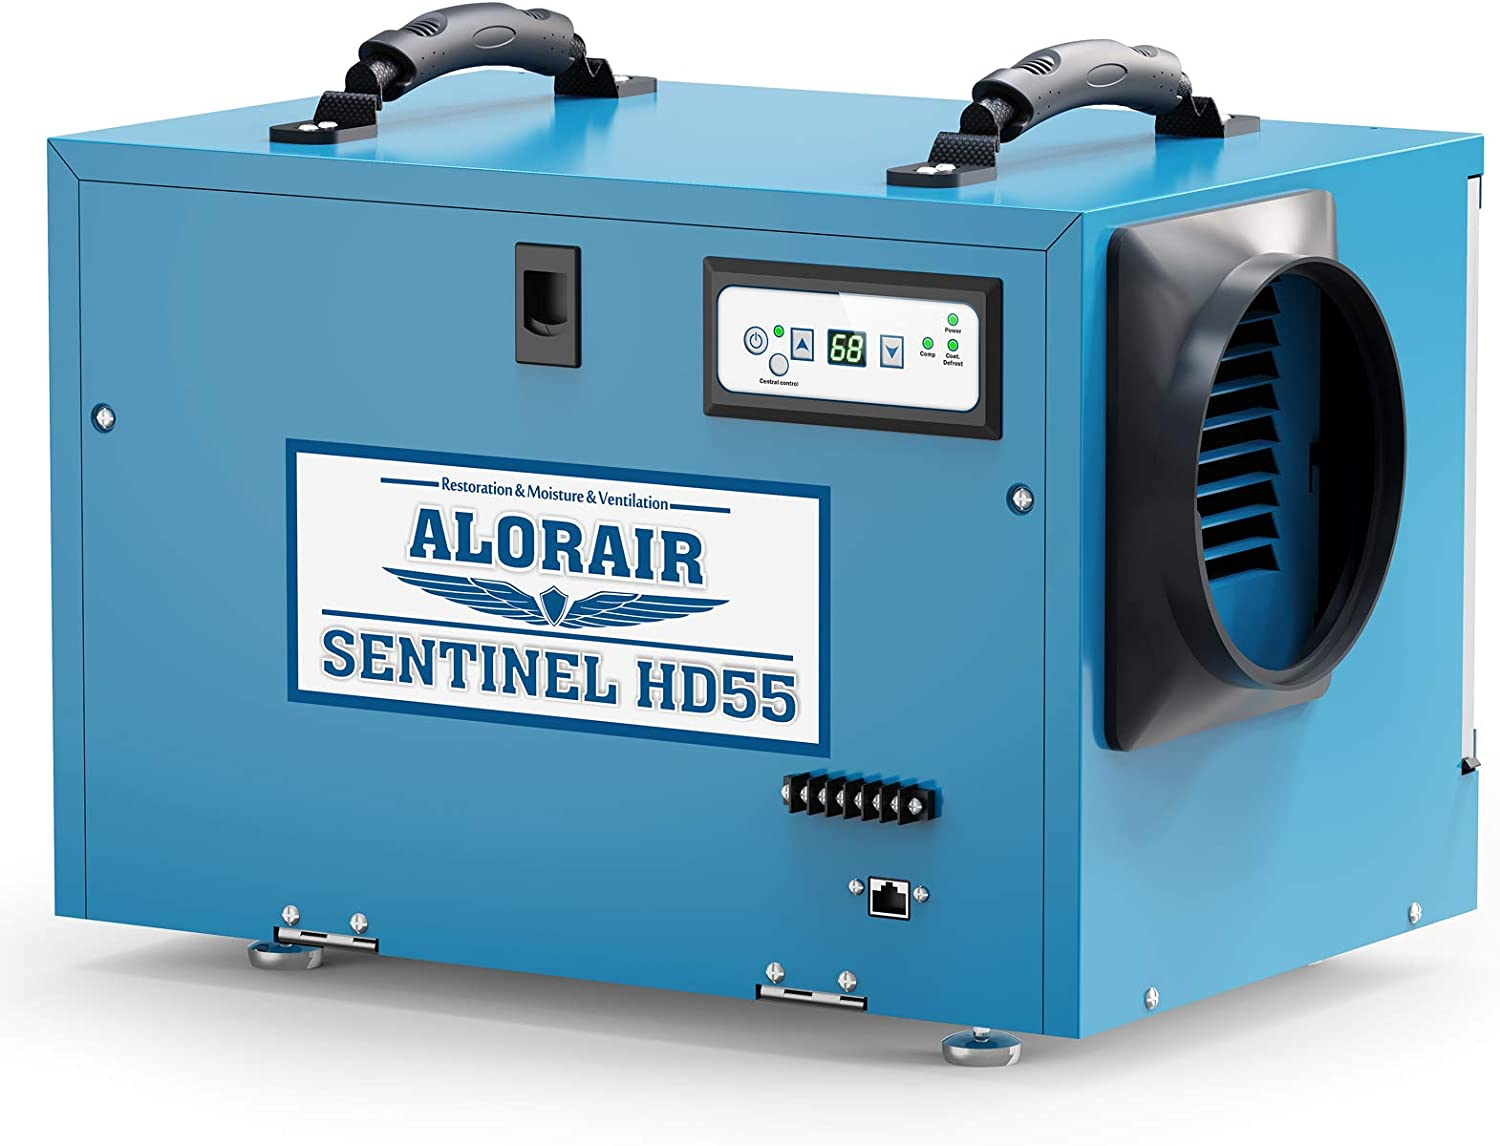 AlorAir Commercial Dehumidifier 113 Pint, with Drain Hose for Crawl Spaces, Basements, Industry Water Damage Unit, Compact, Portable, Auto Defrost, Memory Starting, 5 Years Warranty, Sentinel HD55